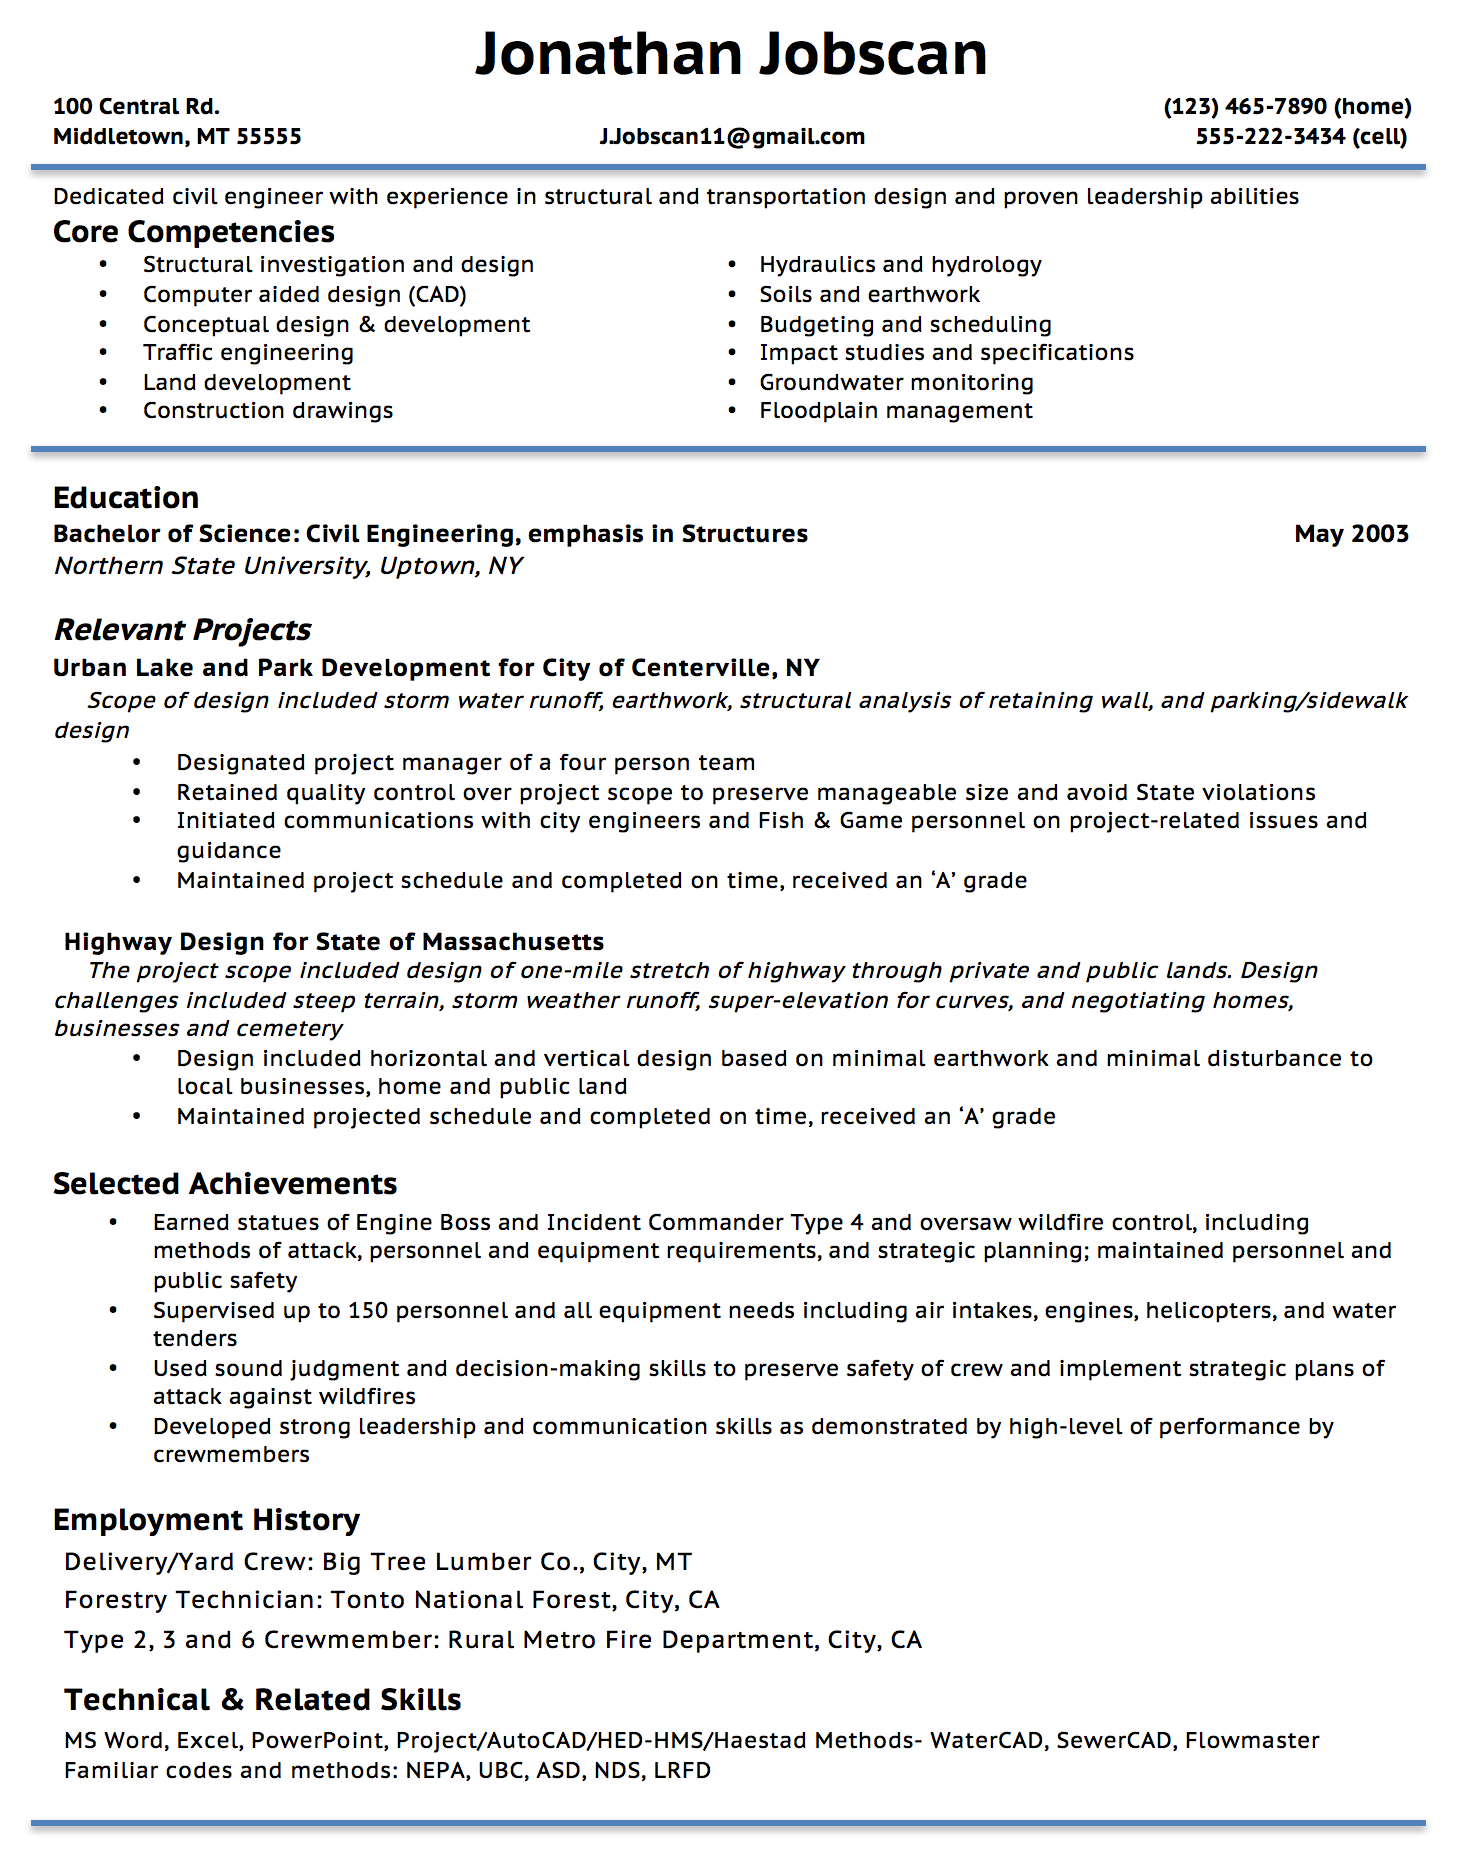 Opposenewapstandardsus  Mesmerizing Resume Writing Guide  Jobscan With Fair Example Of A Functional Resume Format With Easy On The Eye Sample Attorney Resumes Also Resume Skills Customer Service In Addition Auto Tech Resume And Skills In Resume Sample As Well As Criminal Justice Resume Objective Additionally Teacher Resume Tips From Jobscanco With Opposenewapstandardsus  Fair Resume Writing Guide  Jobscan With Easy On The Eye Example Of A Functional Resume Format And Mesmerizing Sample Attorney Resumes Also Resume Skills Customer Service In Addition Auto Tech Resume From Jobscanco